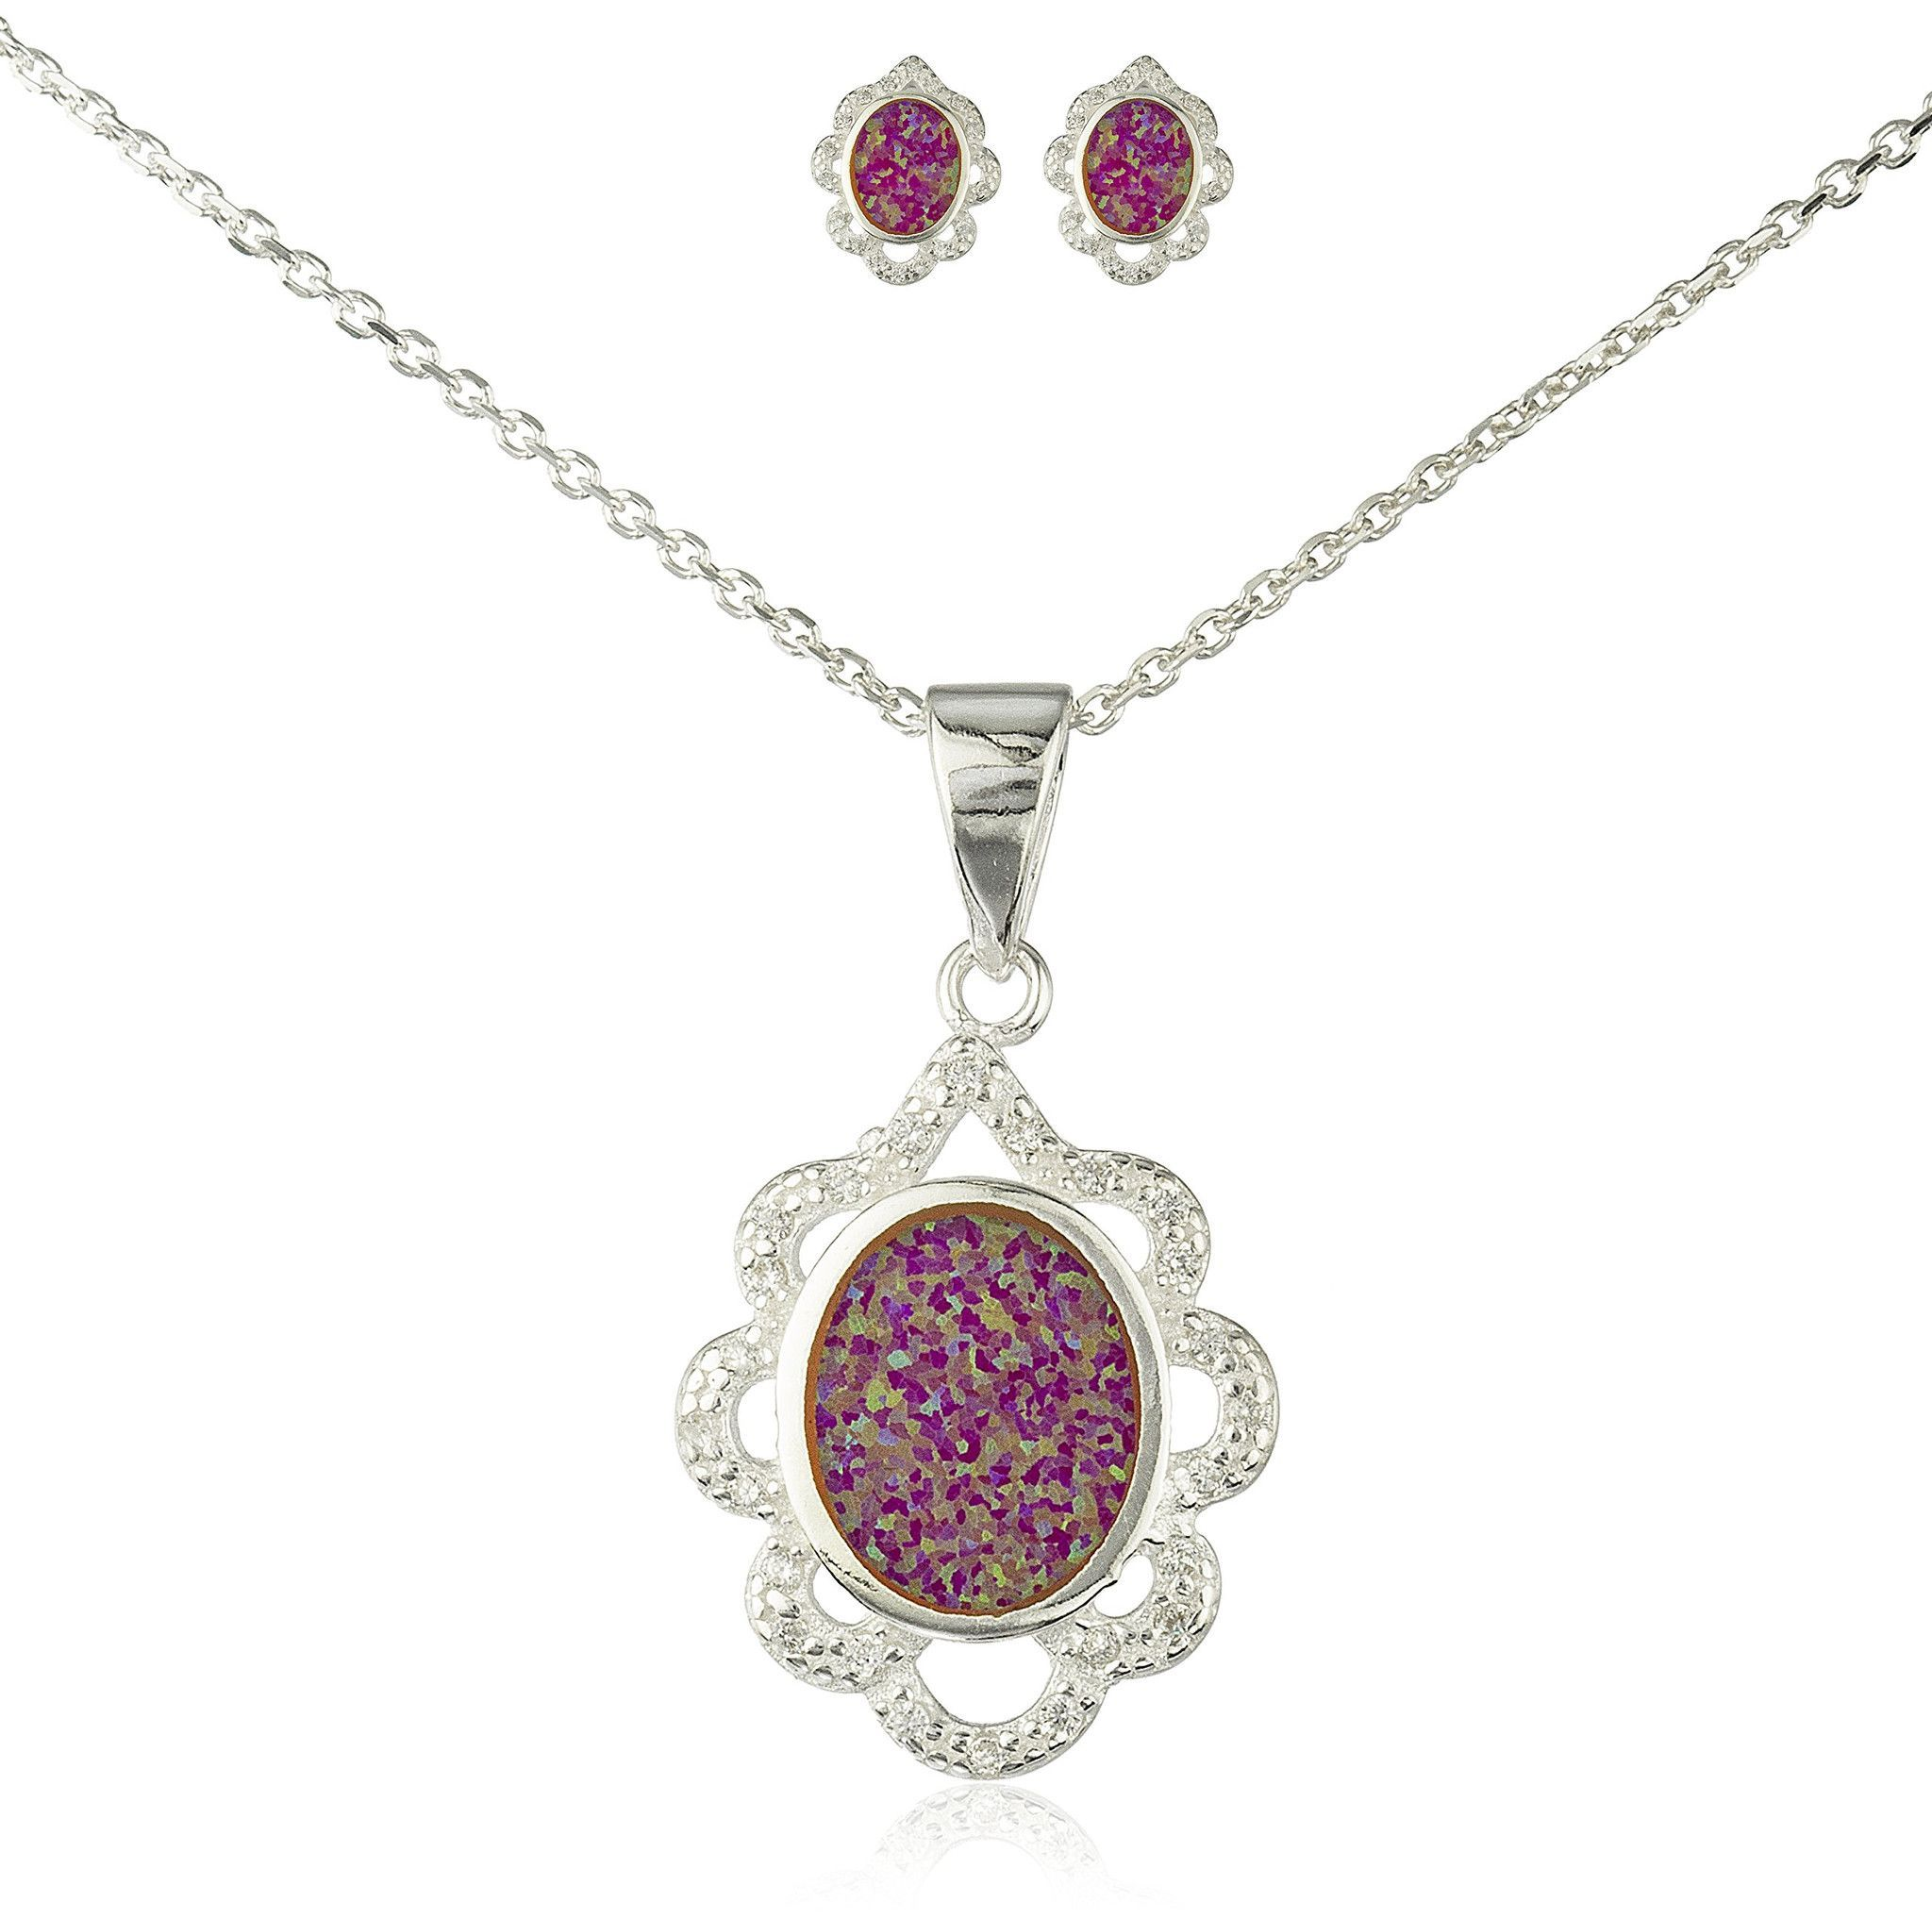 Real 925 Sterling Silver Fancy Design Necklace with Cz Stones and Matching Stud Earrings Jewelry Set (Pink)